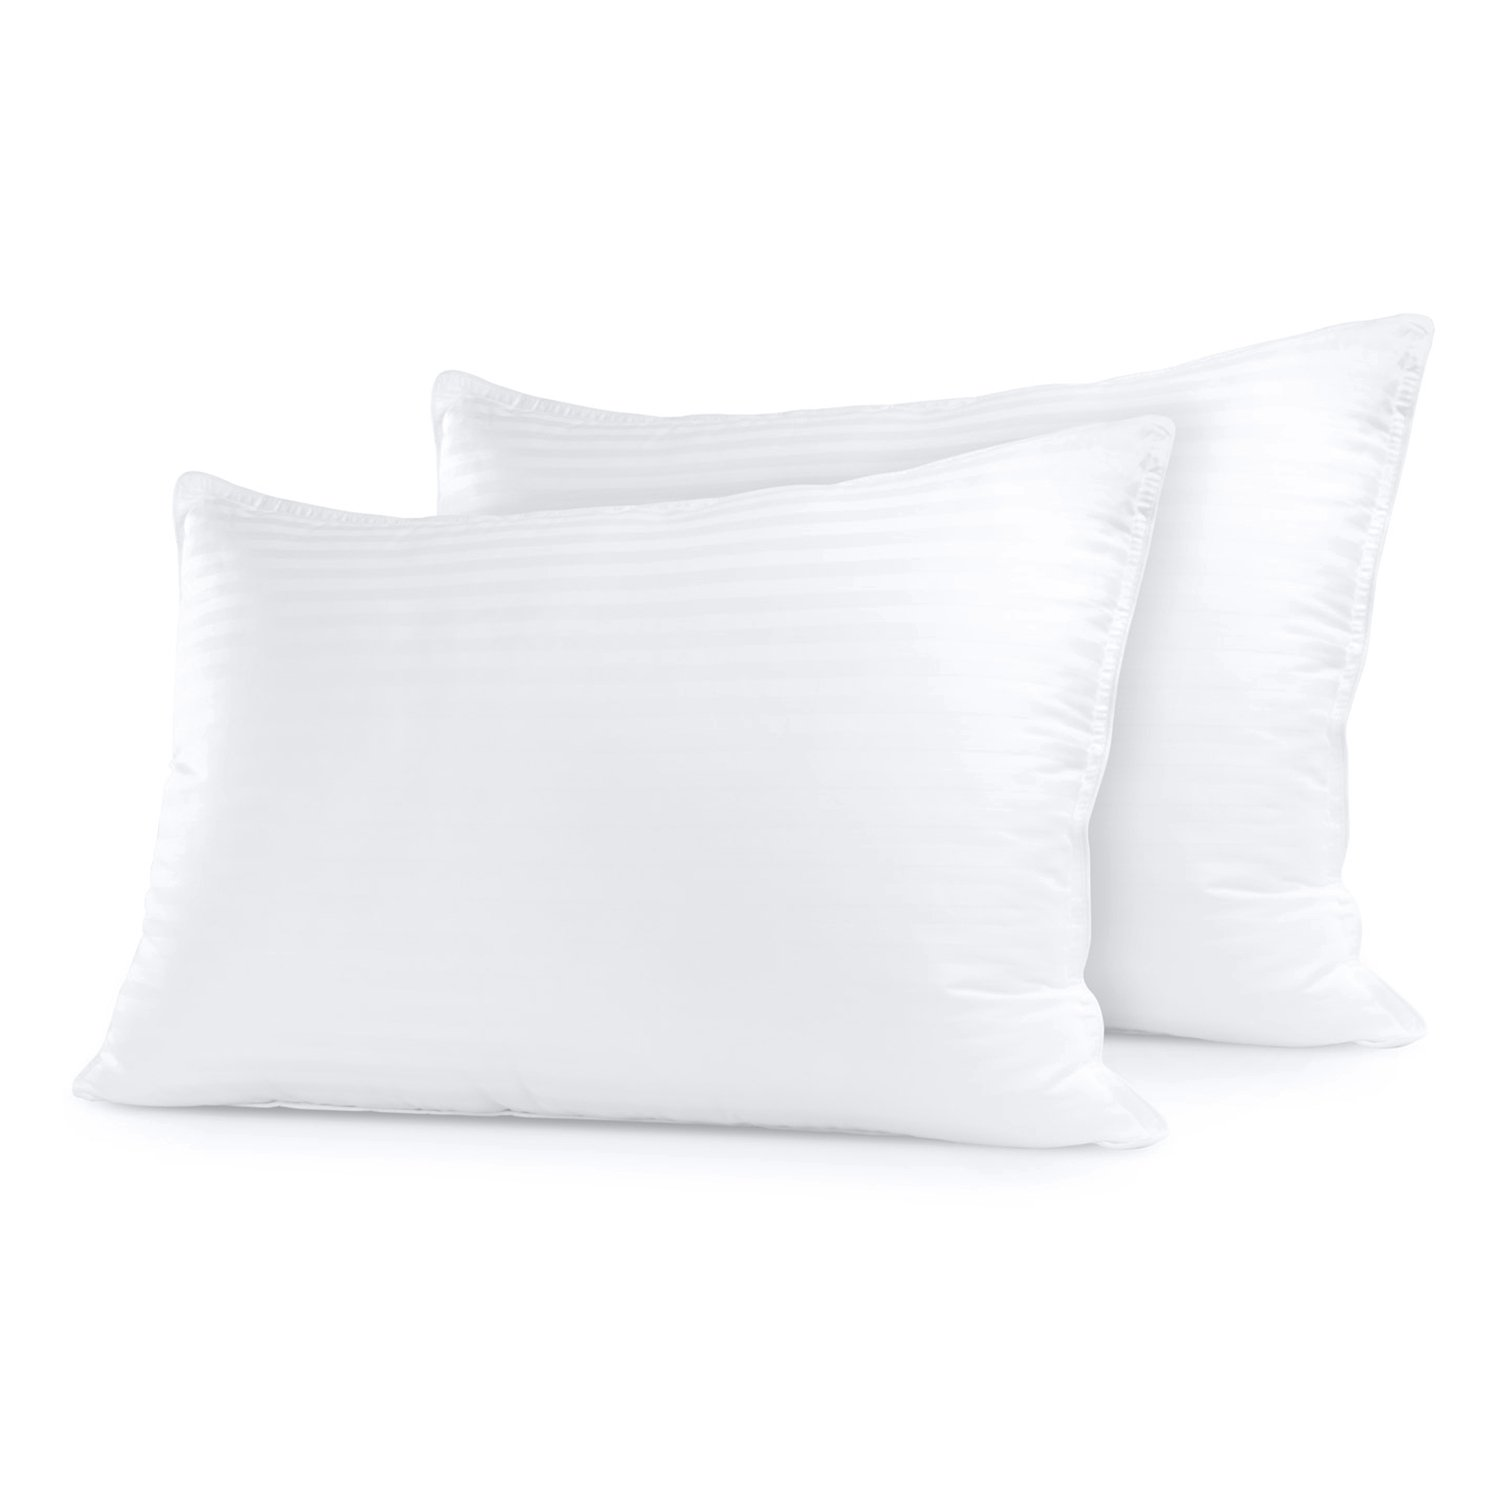 Looking for the best cooling pillow discover what it is here The more pillows you sleep with